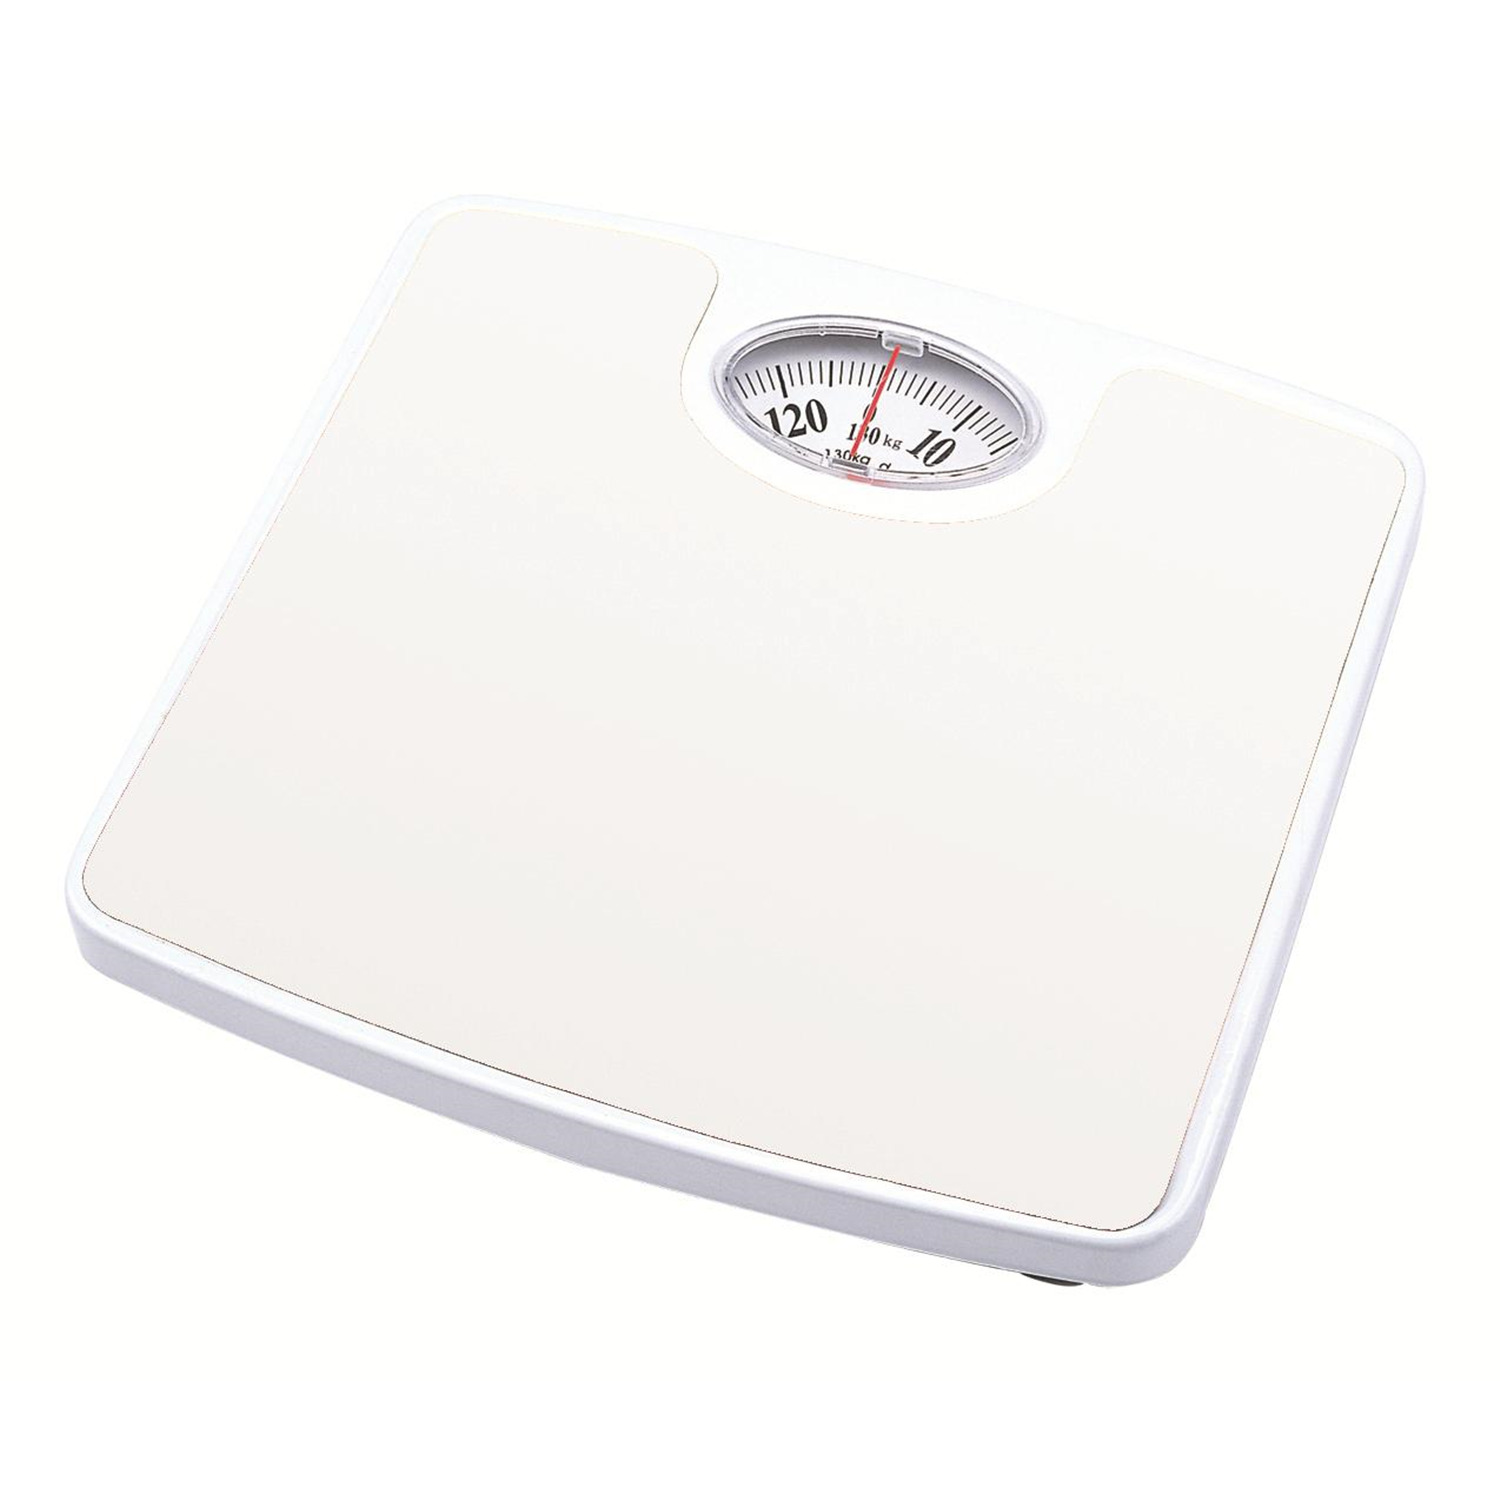 Sunny Bathroom Scale - [SH-1010A]